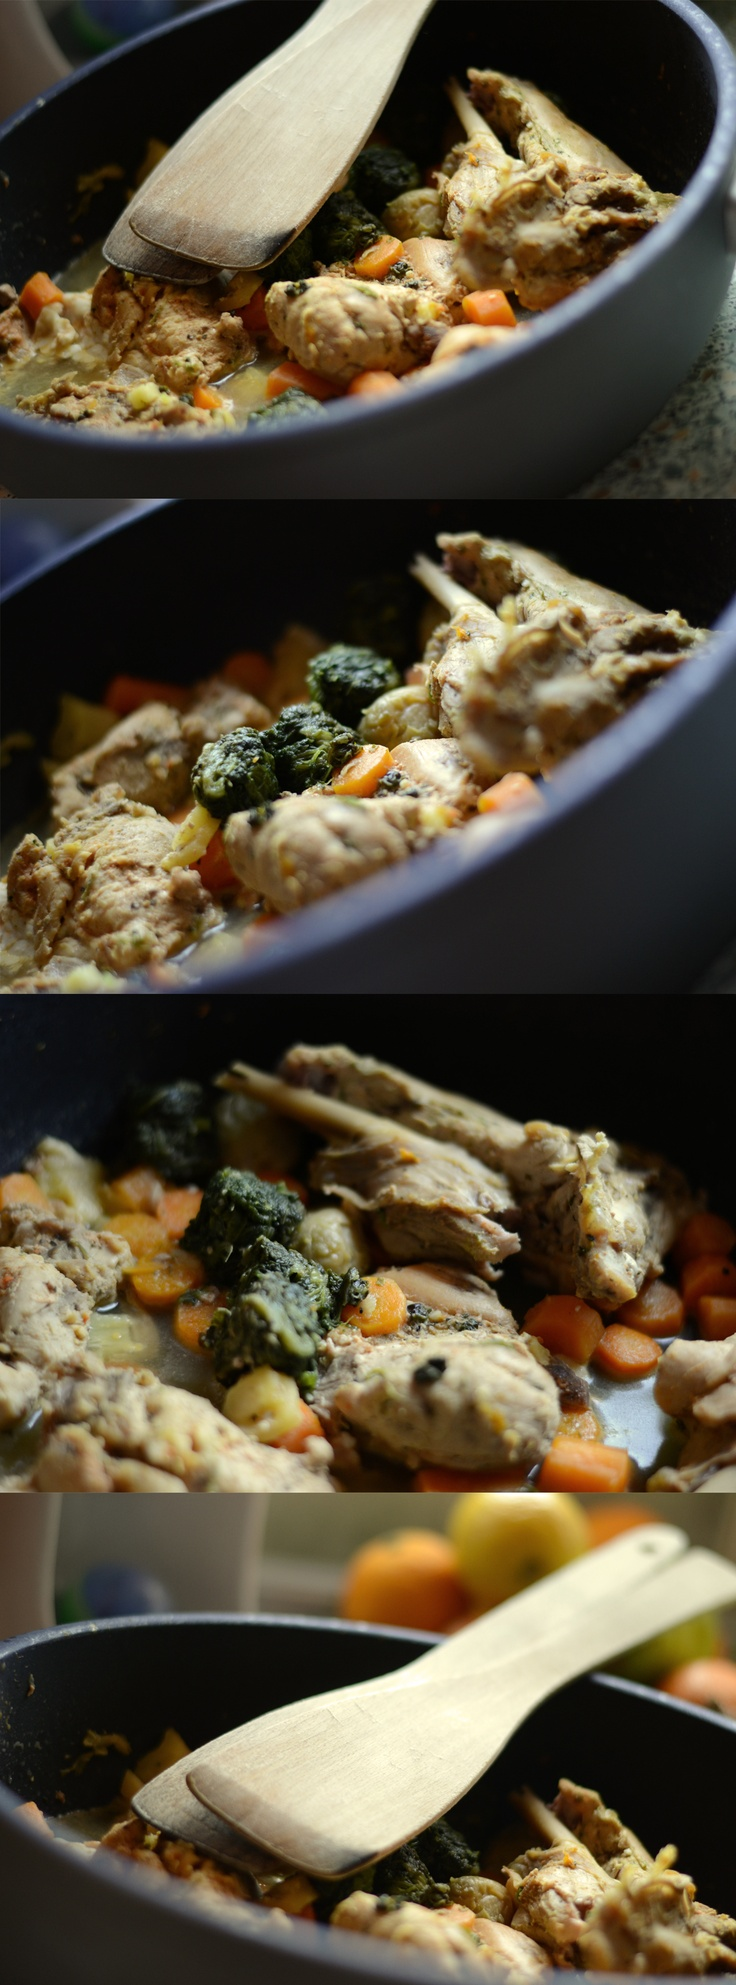 Grilled rabbit with vegetables and spinach...